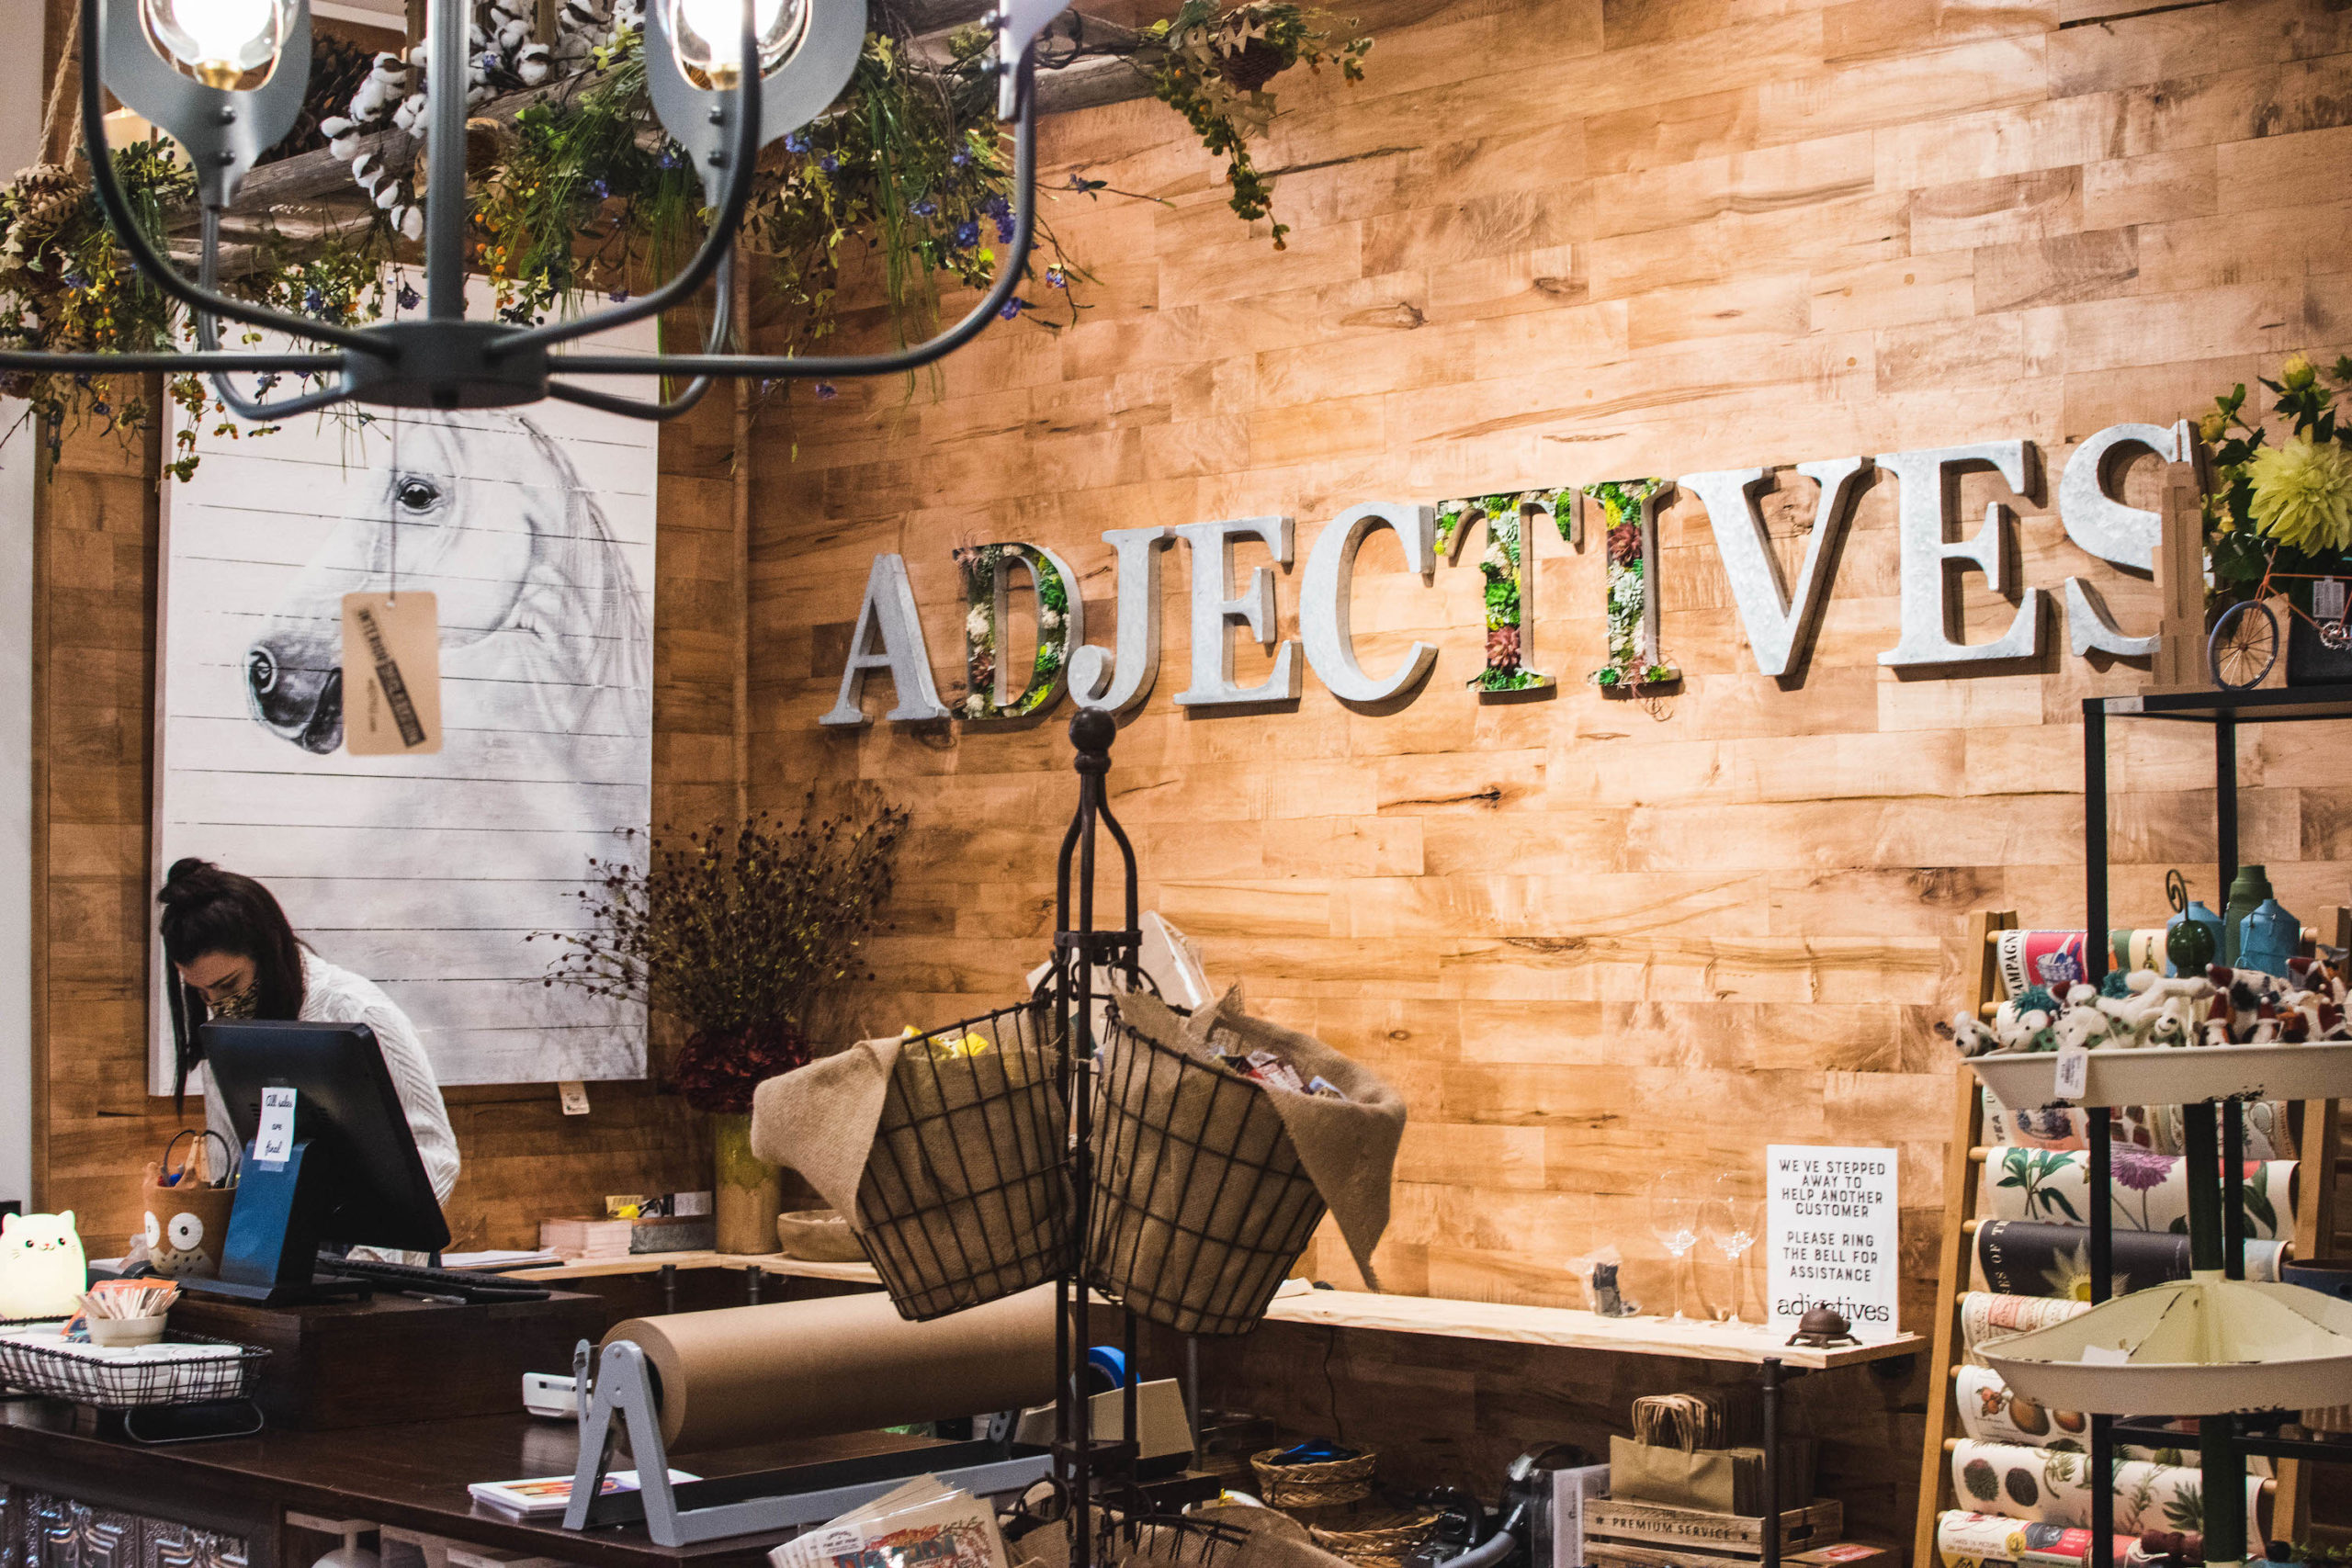 Adjectives spelled out in large metal letters on the wall behind the cashier area at Adjectives Market on Park Avenue.